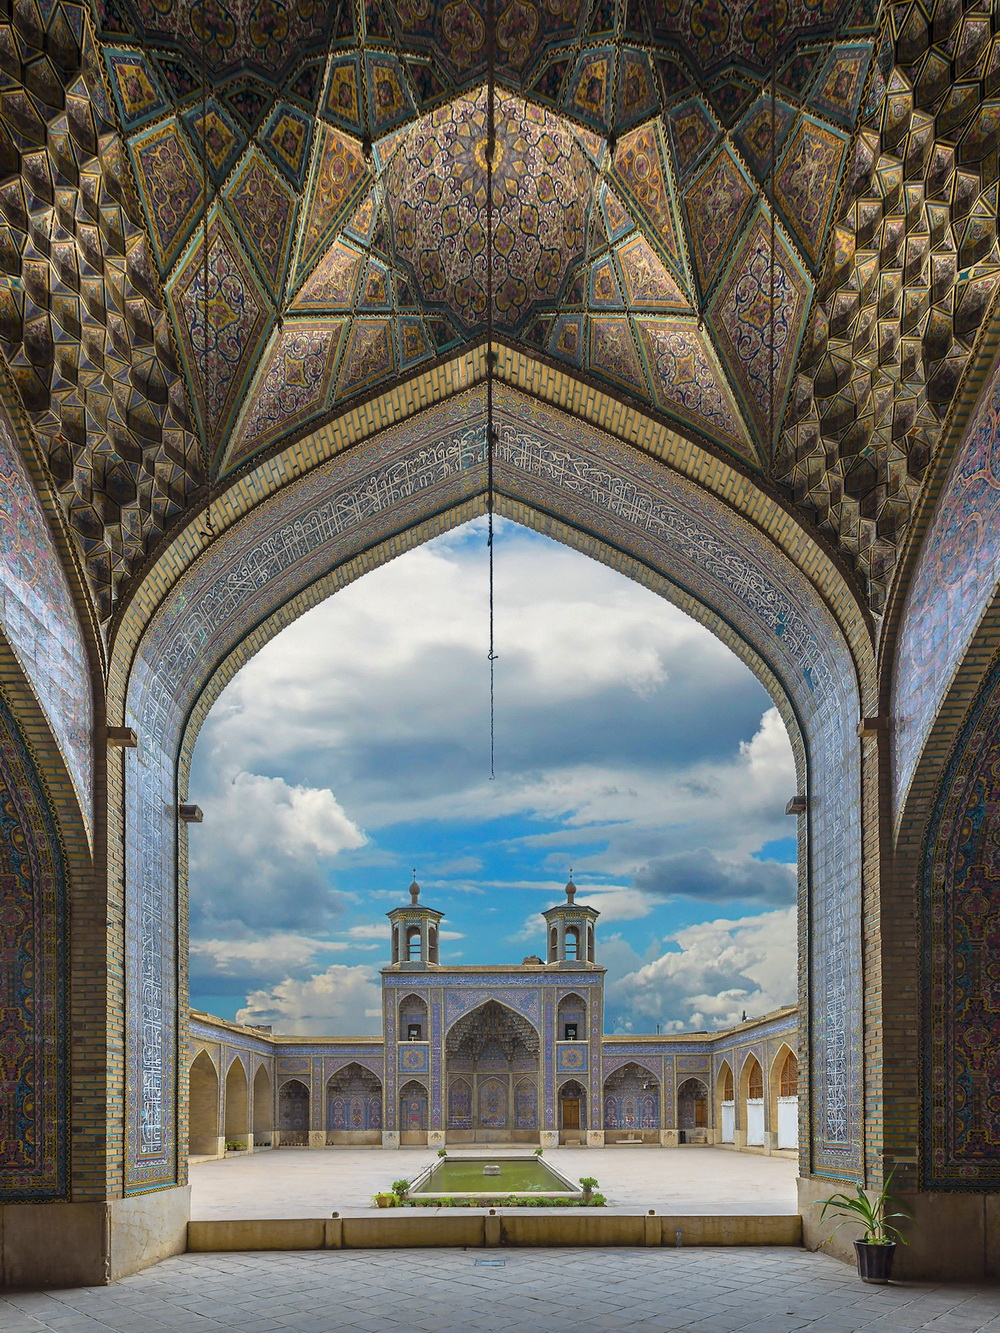 The Grand Mosque of Isfahan